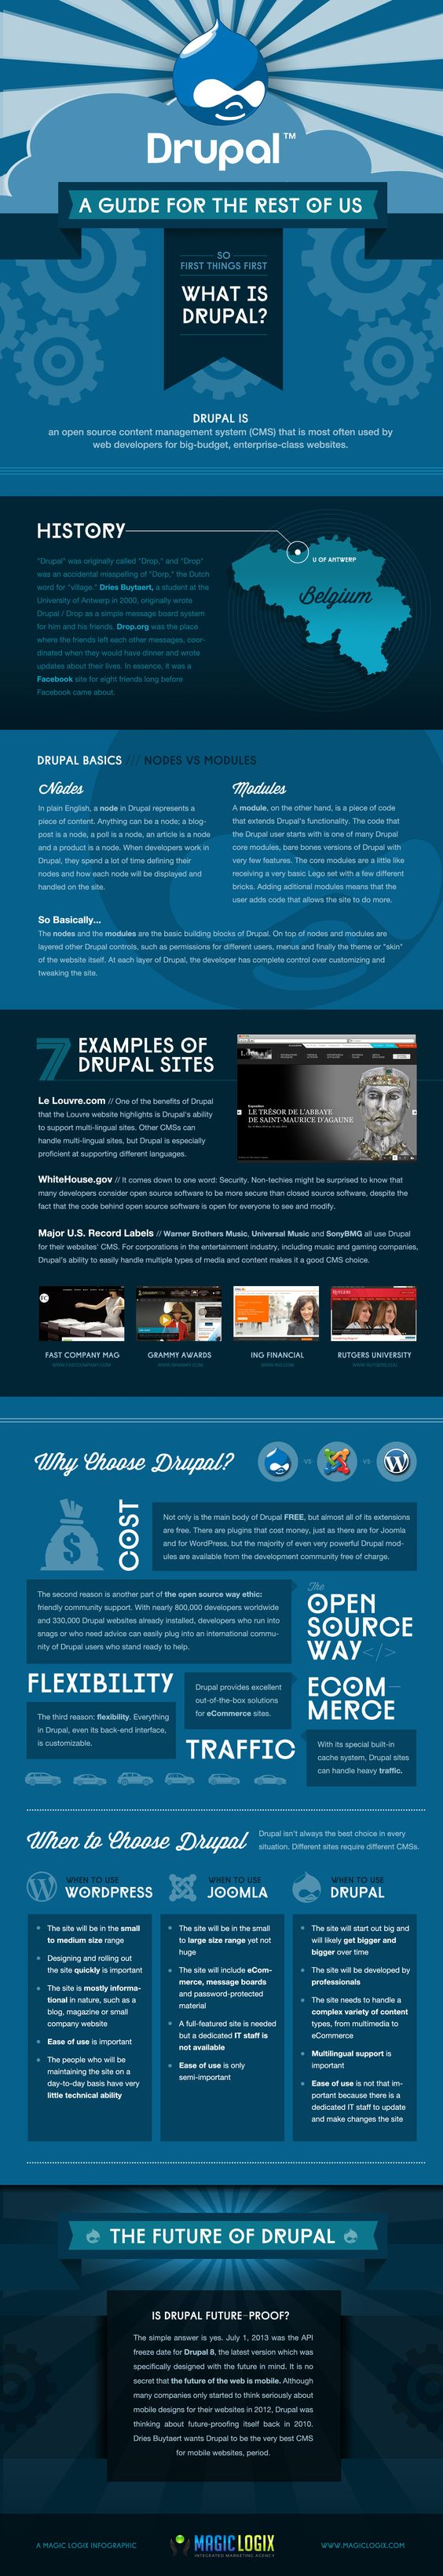 #Drupal: A Guide For The Rest of Us #infographic